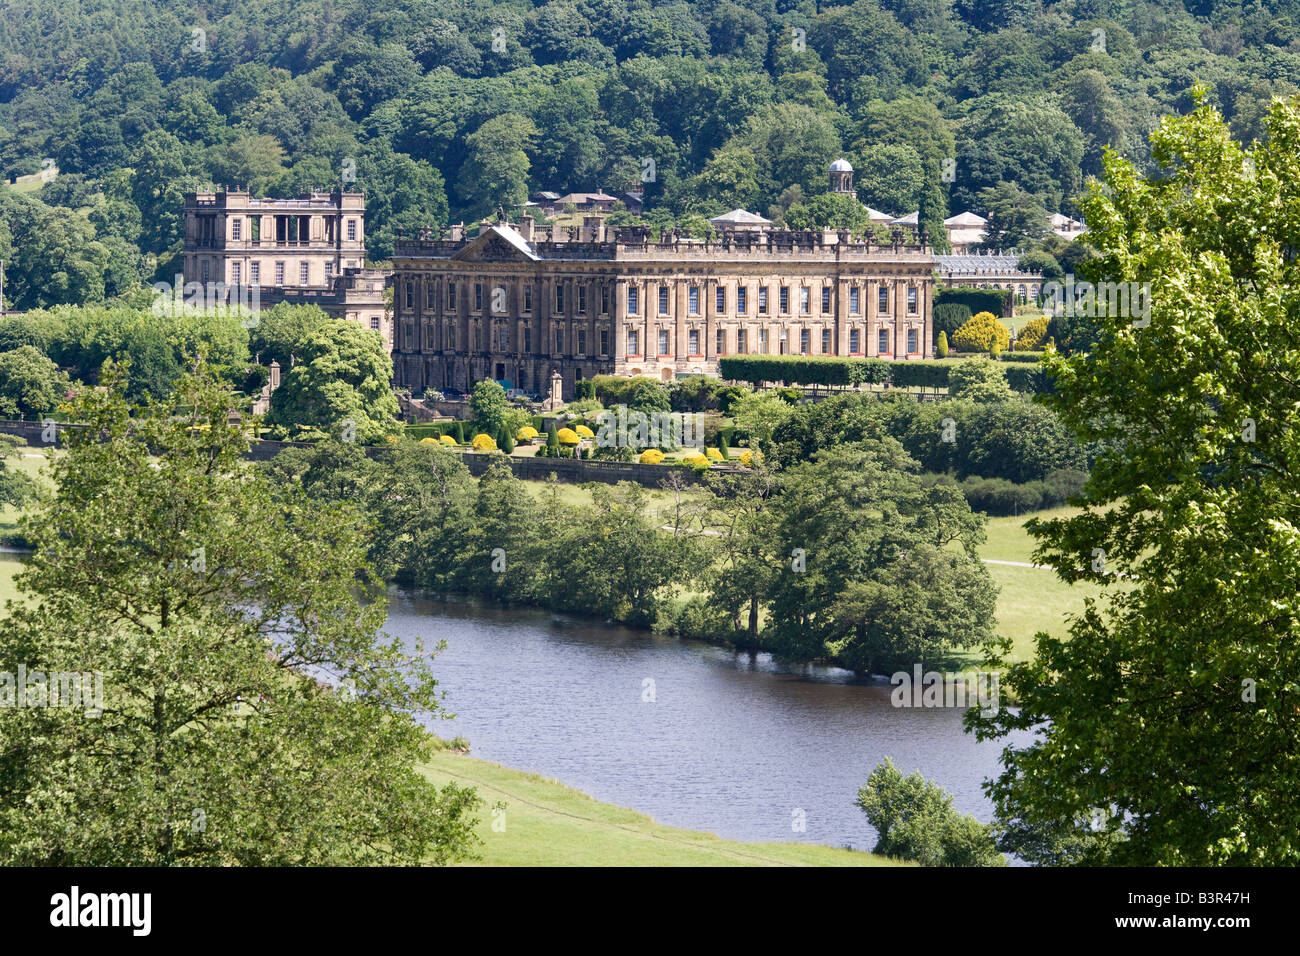 Chatsworth House, Derbyshire Duke and Duchess of Devonshire - Stock Image